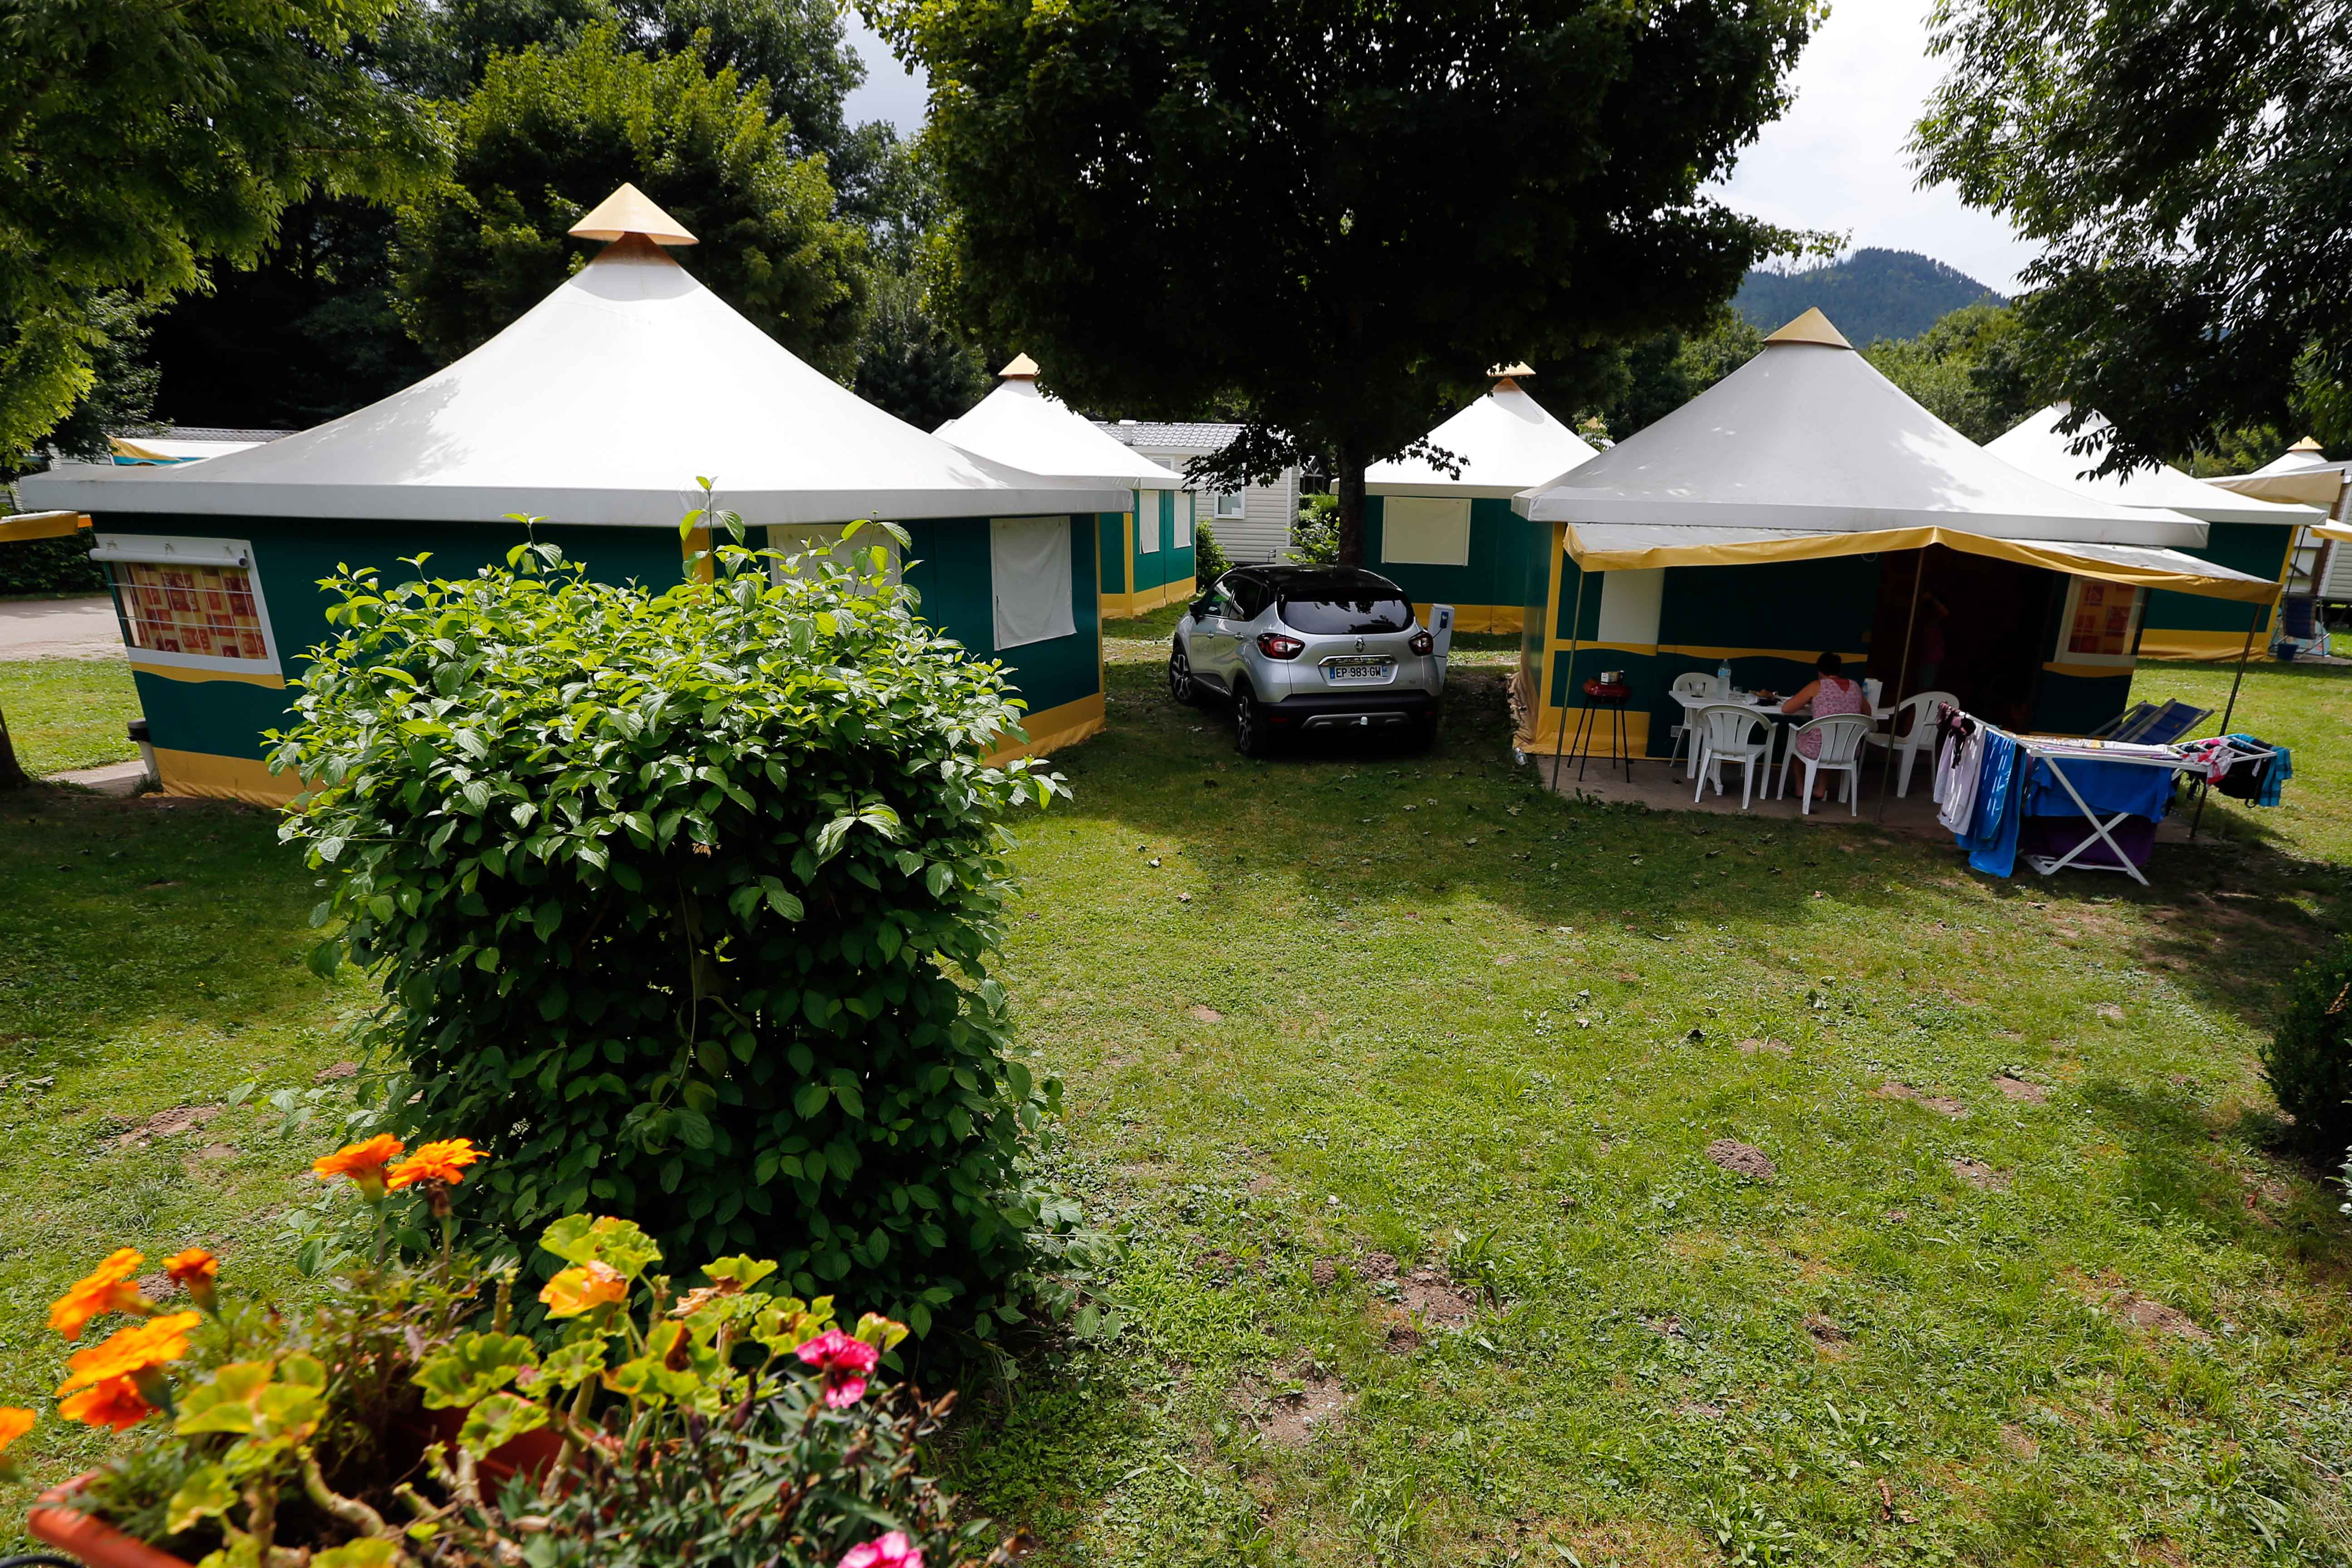 Camping Le Giessen domki